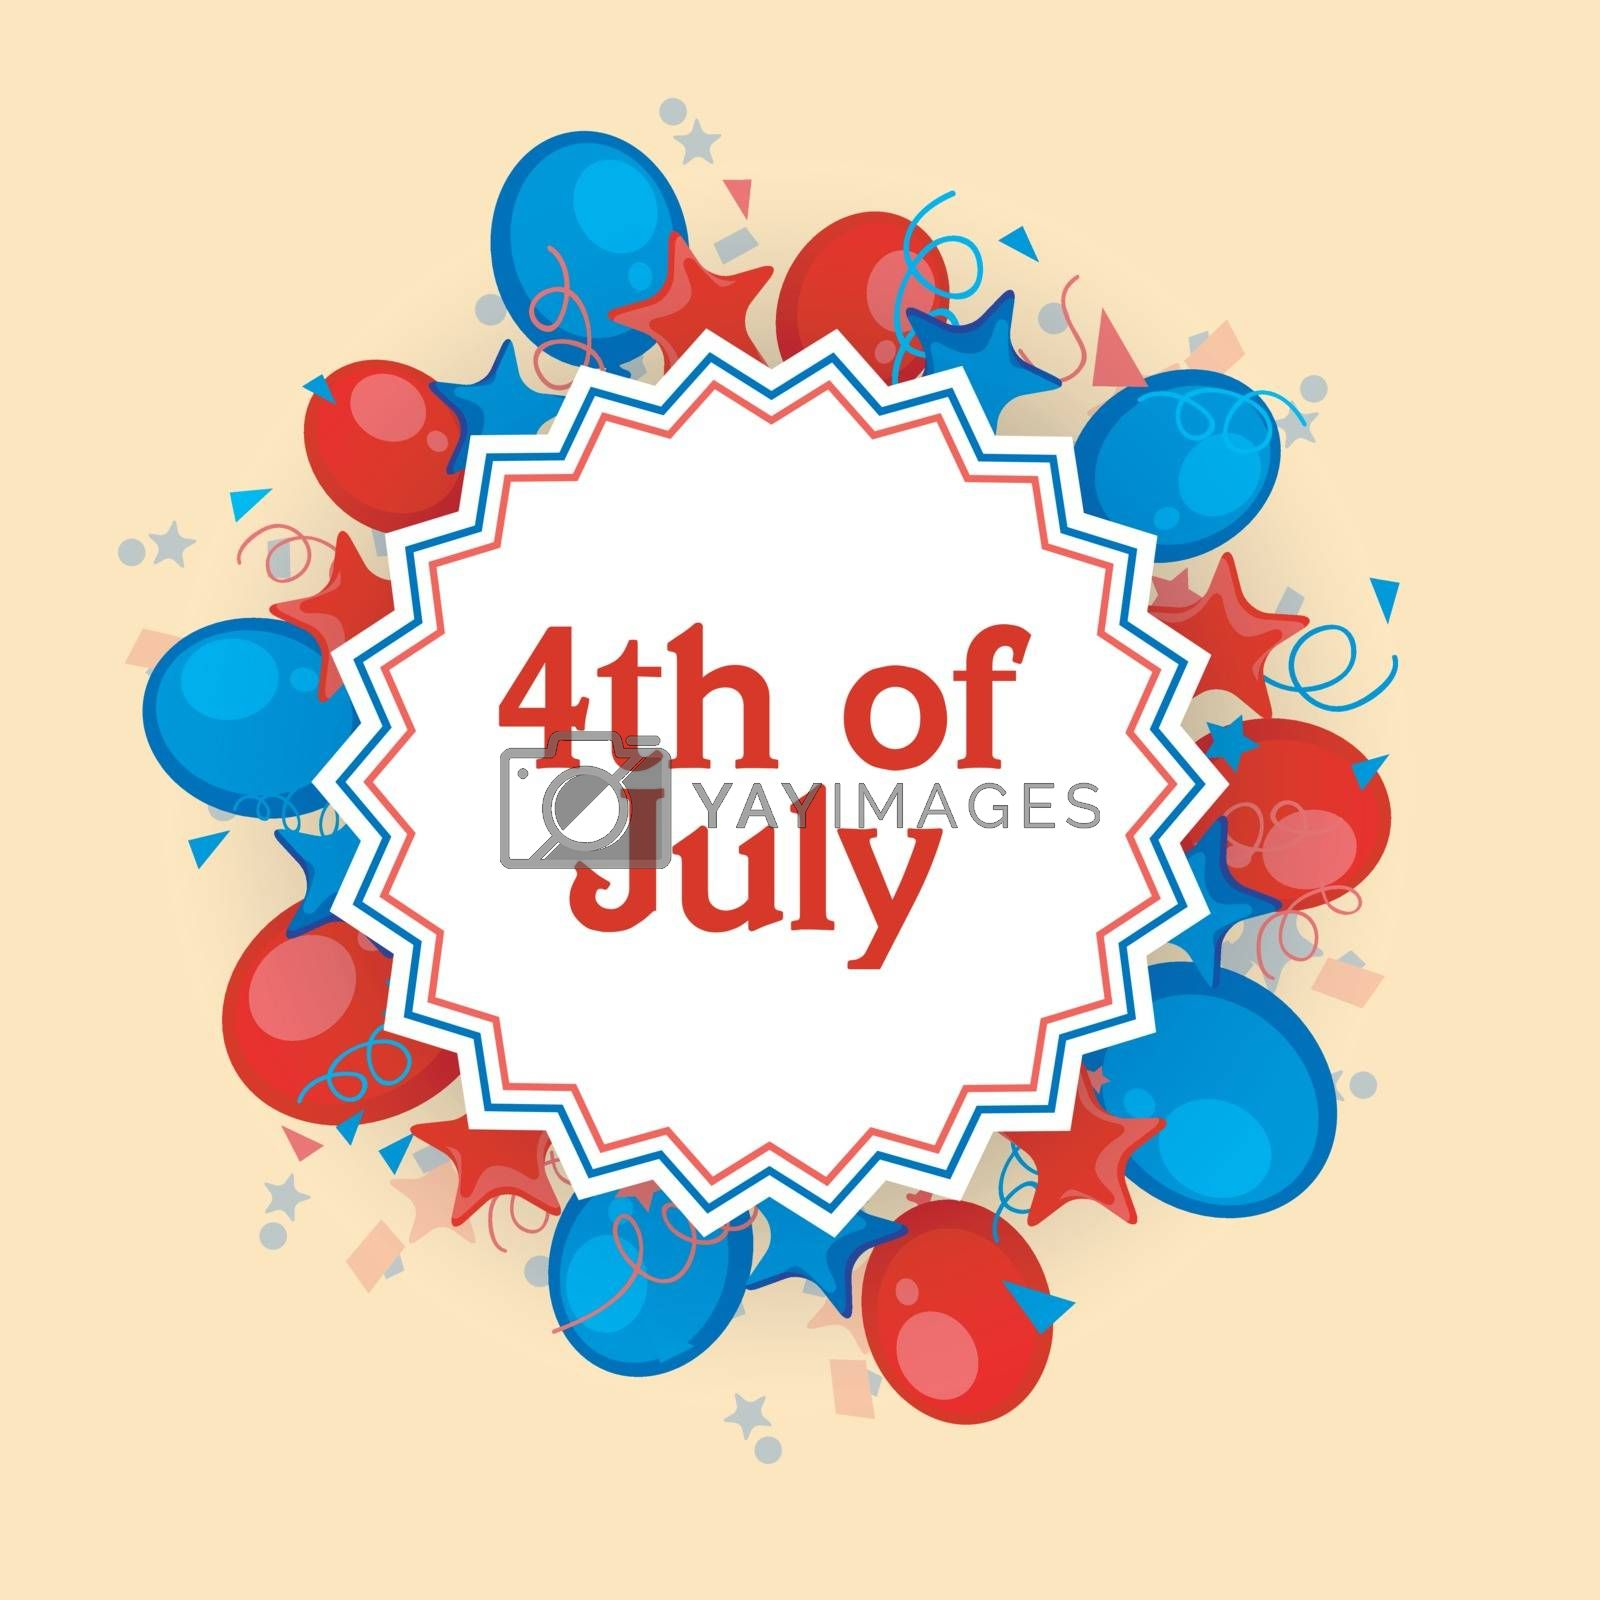 4th of July celebration background decorated with American Flag color balloons, stars and confetti.